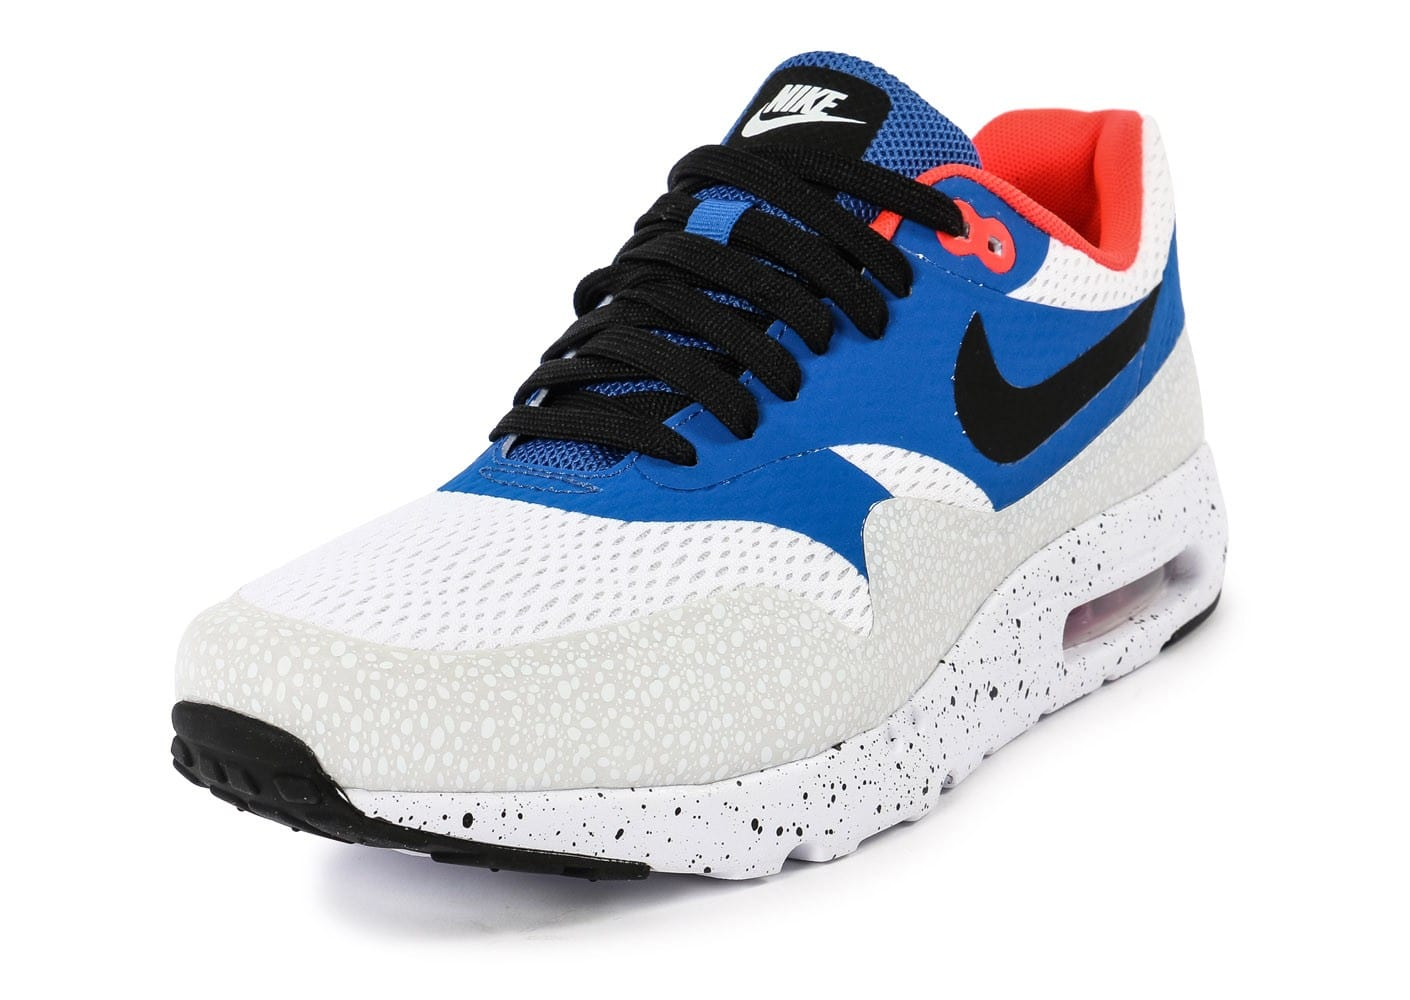 designer fashion f2327 2bf5f ... Chaussures Nike Air Max 1 Ultra Essential bleue et blanche vue  intérieure ...